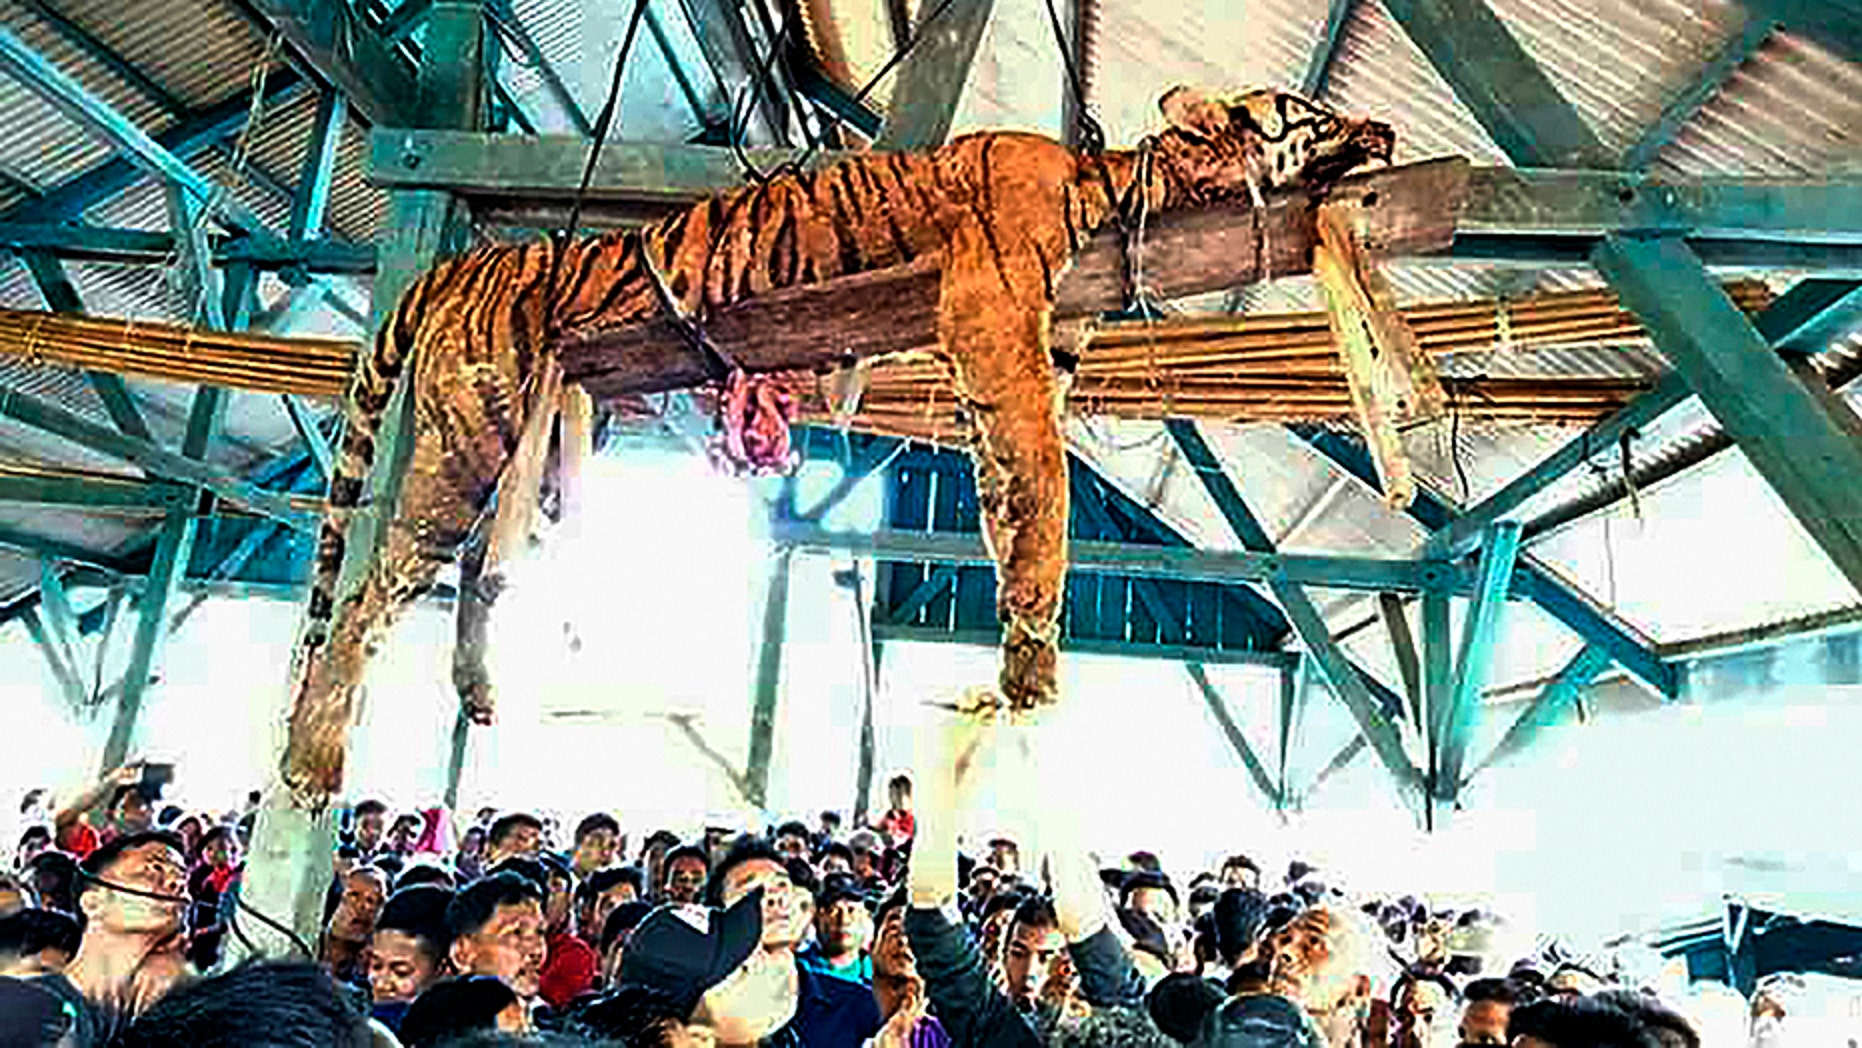 March 4, 2018: The carcass of an endangered Sumatran tiger is pictured hanging from the beams of a public gathering space in an Indonesian village.